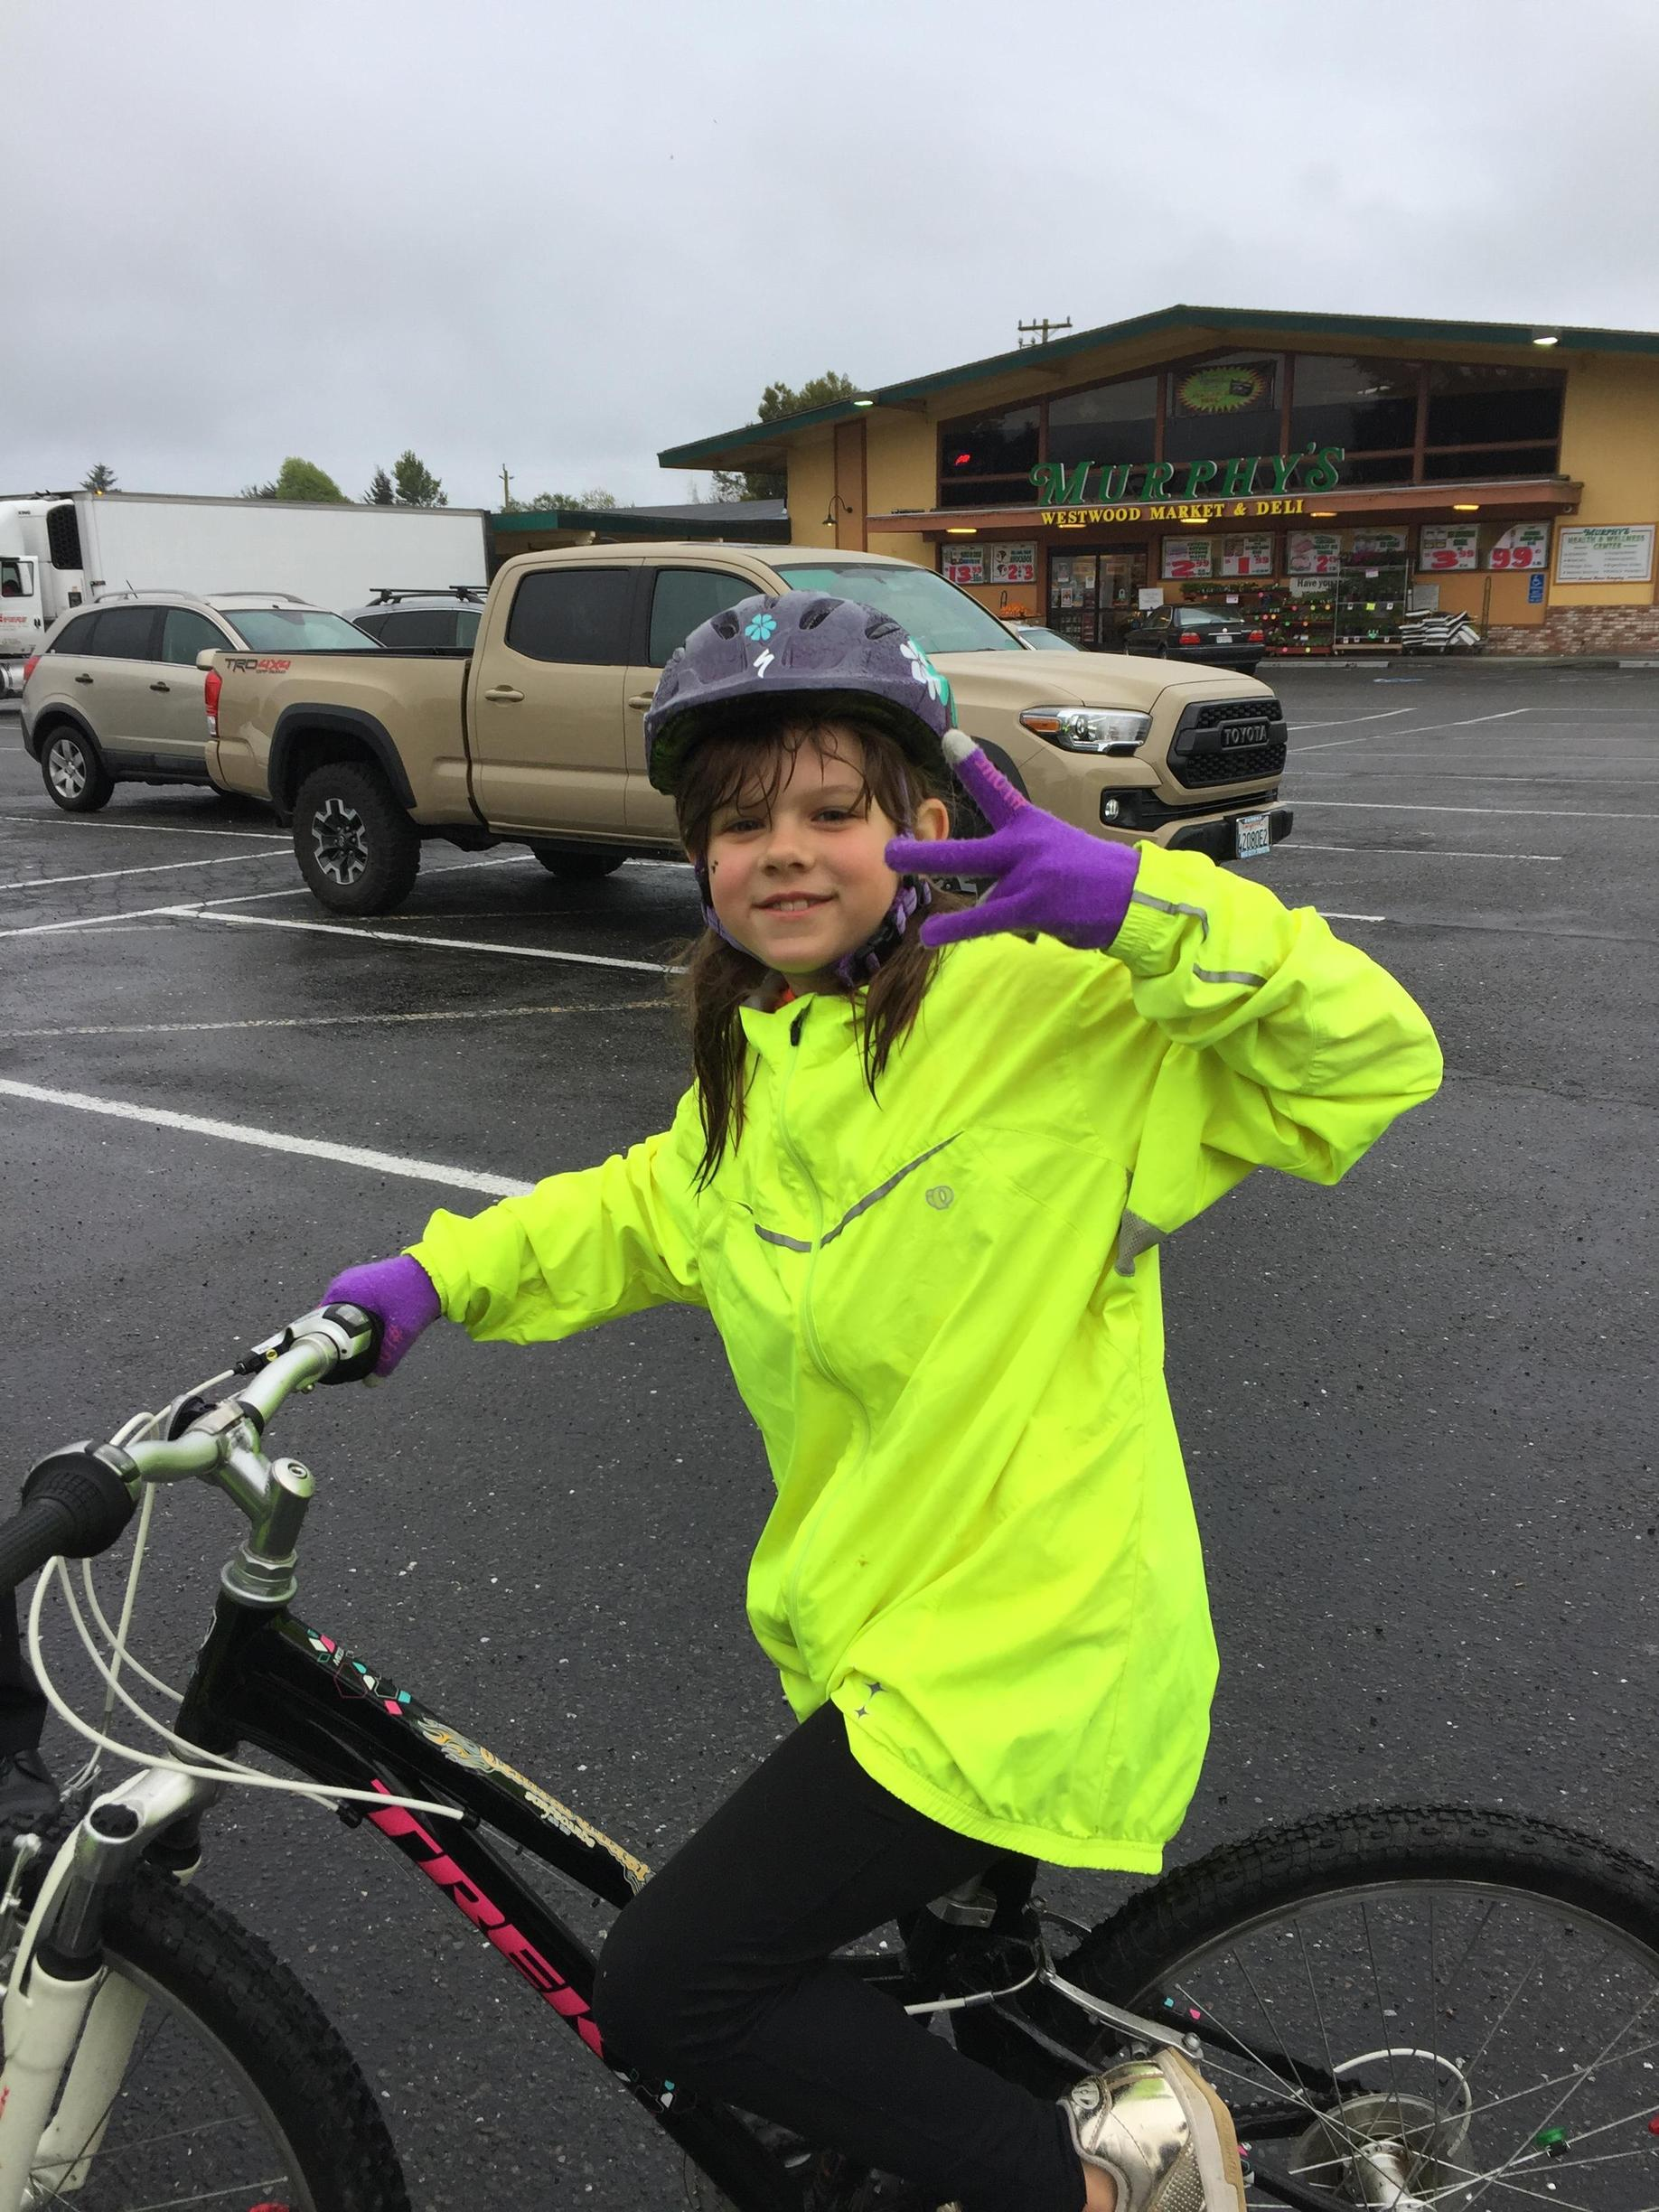 Bike rider ready to ride to school